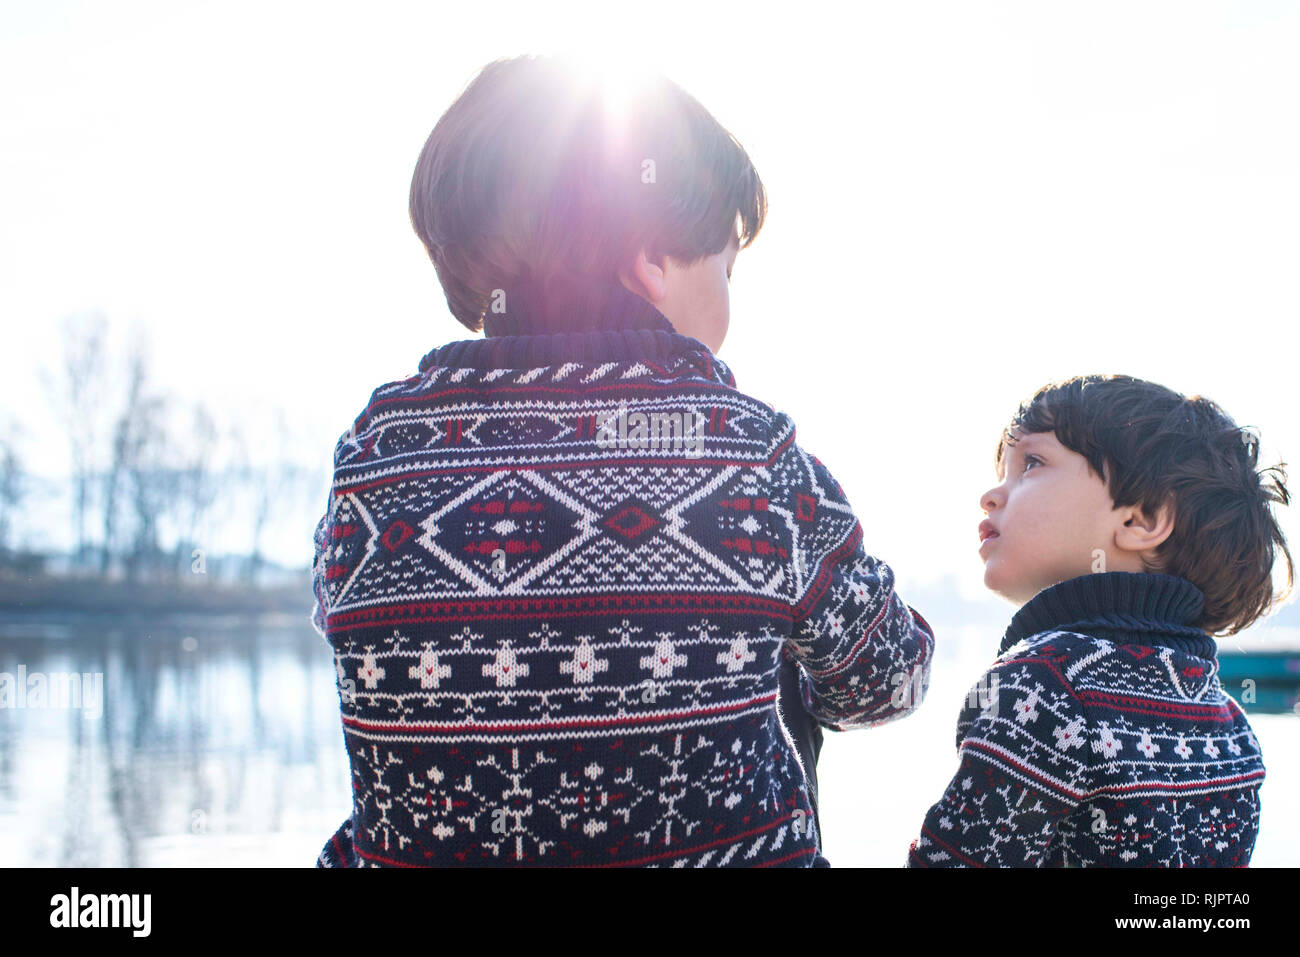 Boy and toddler brother in matching sweaters talking on lakeside, Lake Como, Lecco, Lombardy, Italy - Stock Image